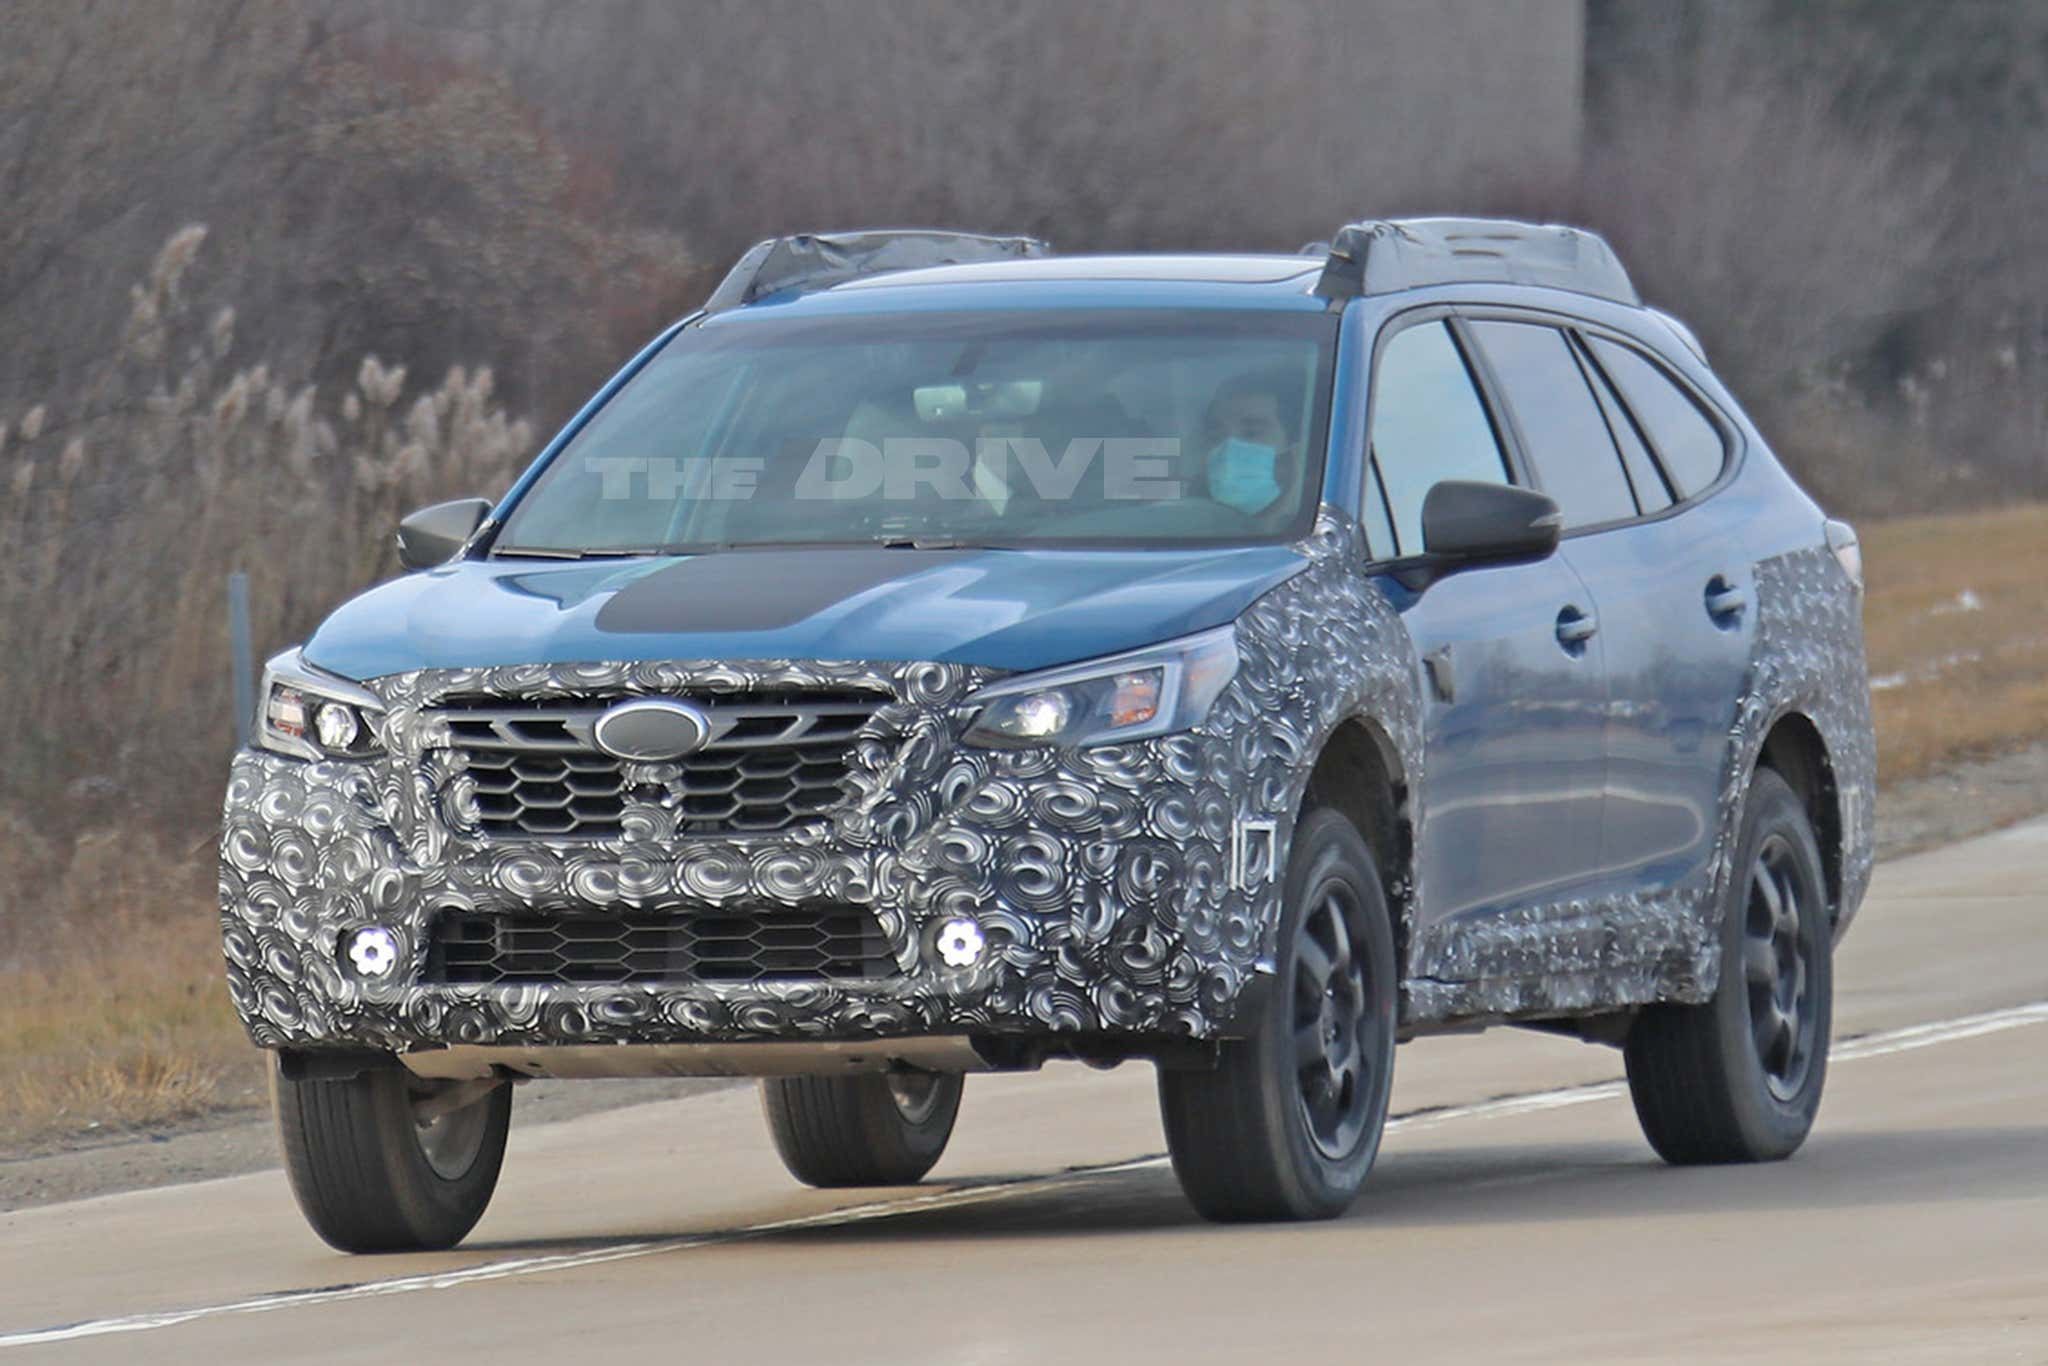 Subaru is testing the high-riding Wilderness Edition of its Outback wagon, which should go on sale before mid-2021.